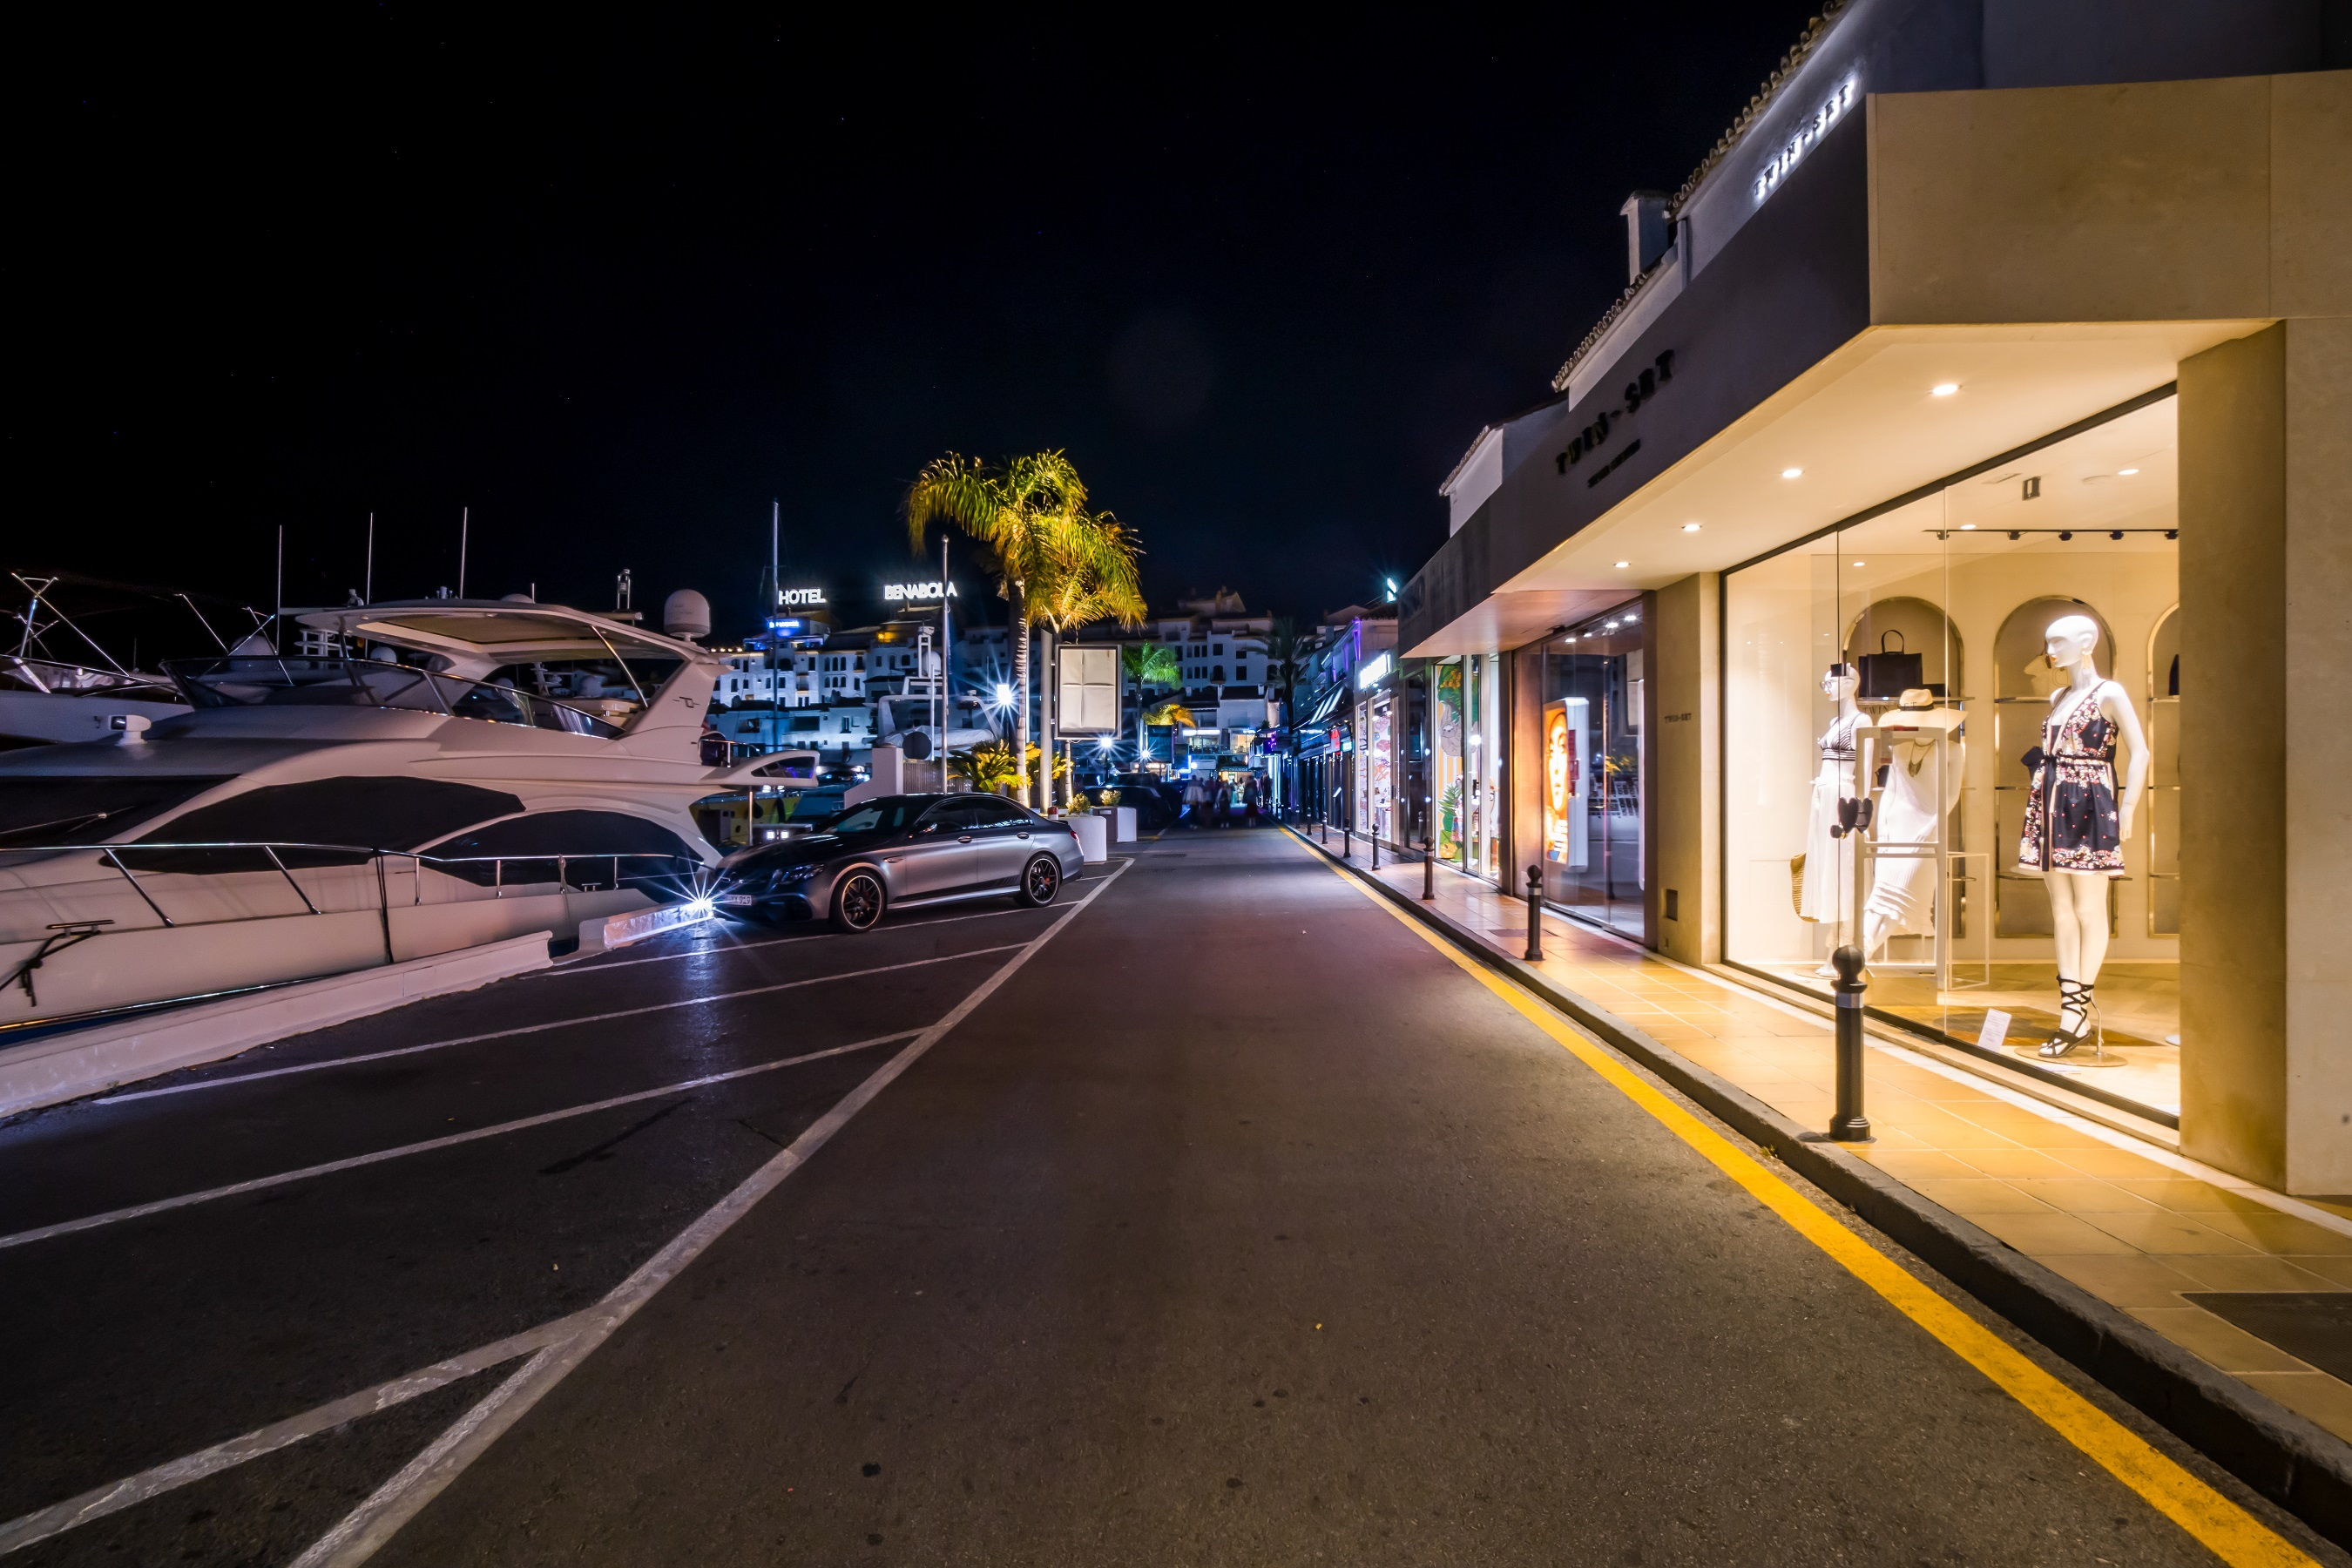 Numerous high-fashion shops and boutiques, nightclubs and gourmet restaurants are located around the port.